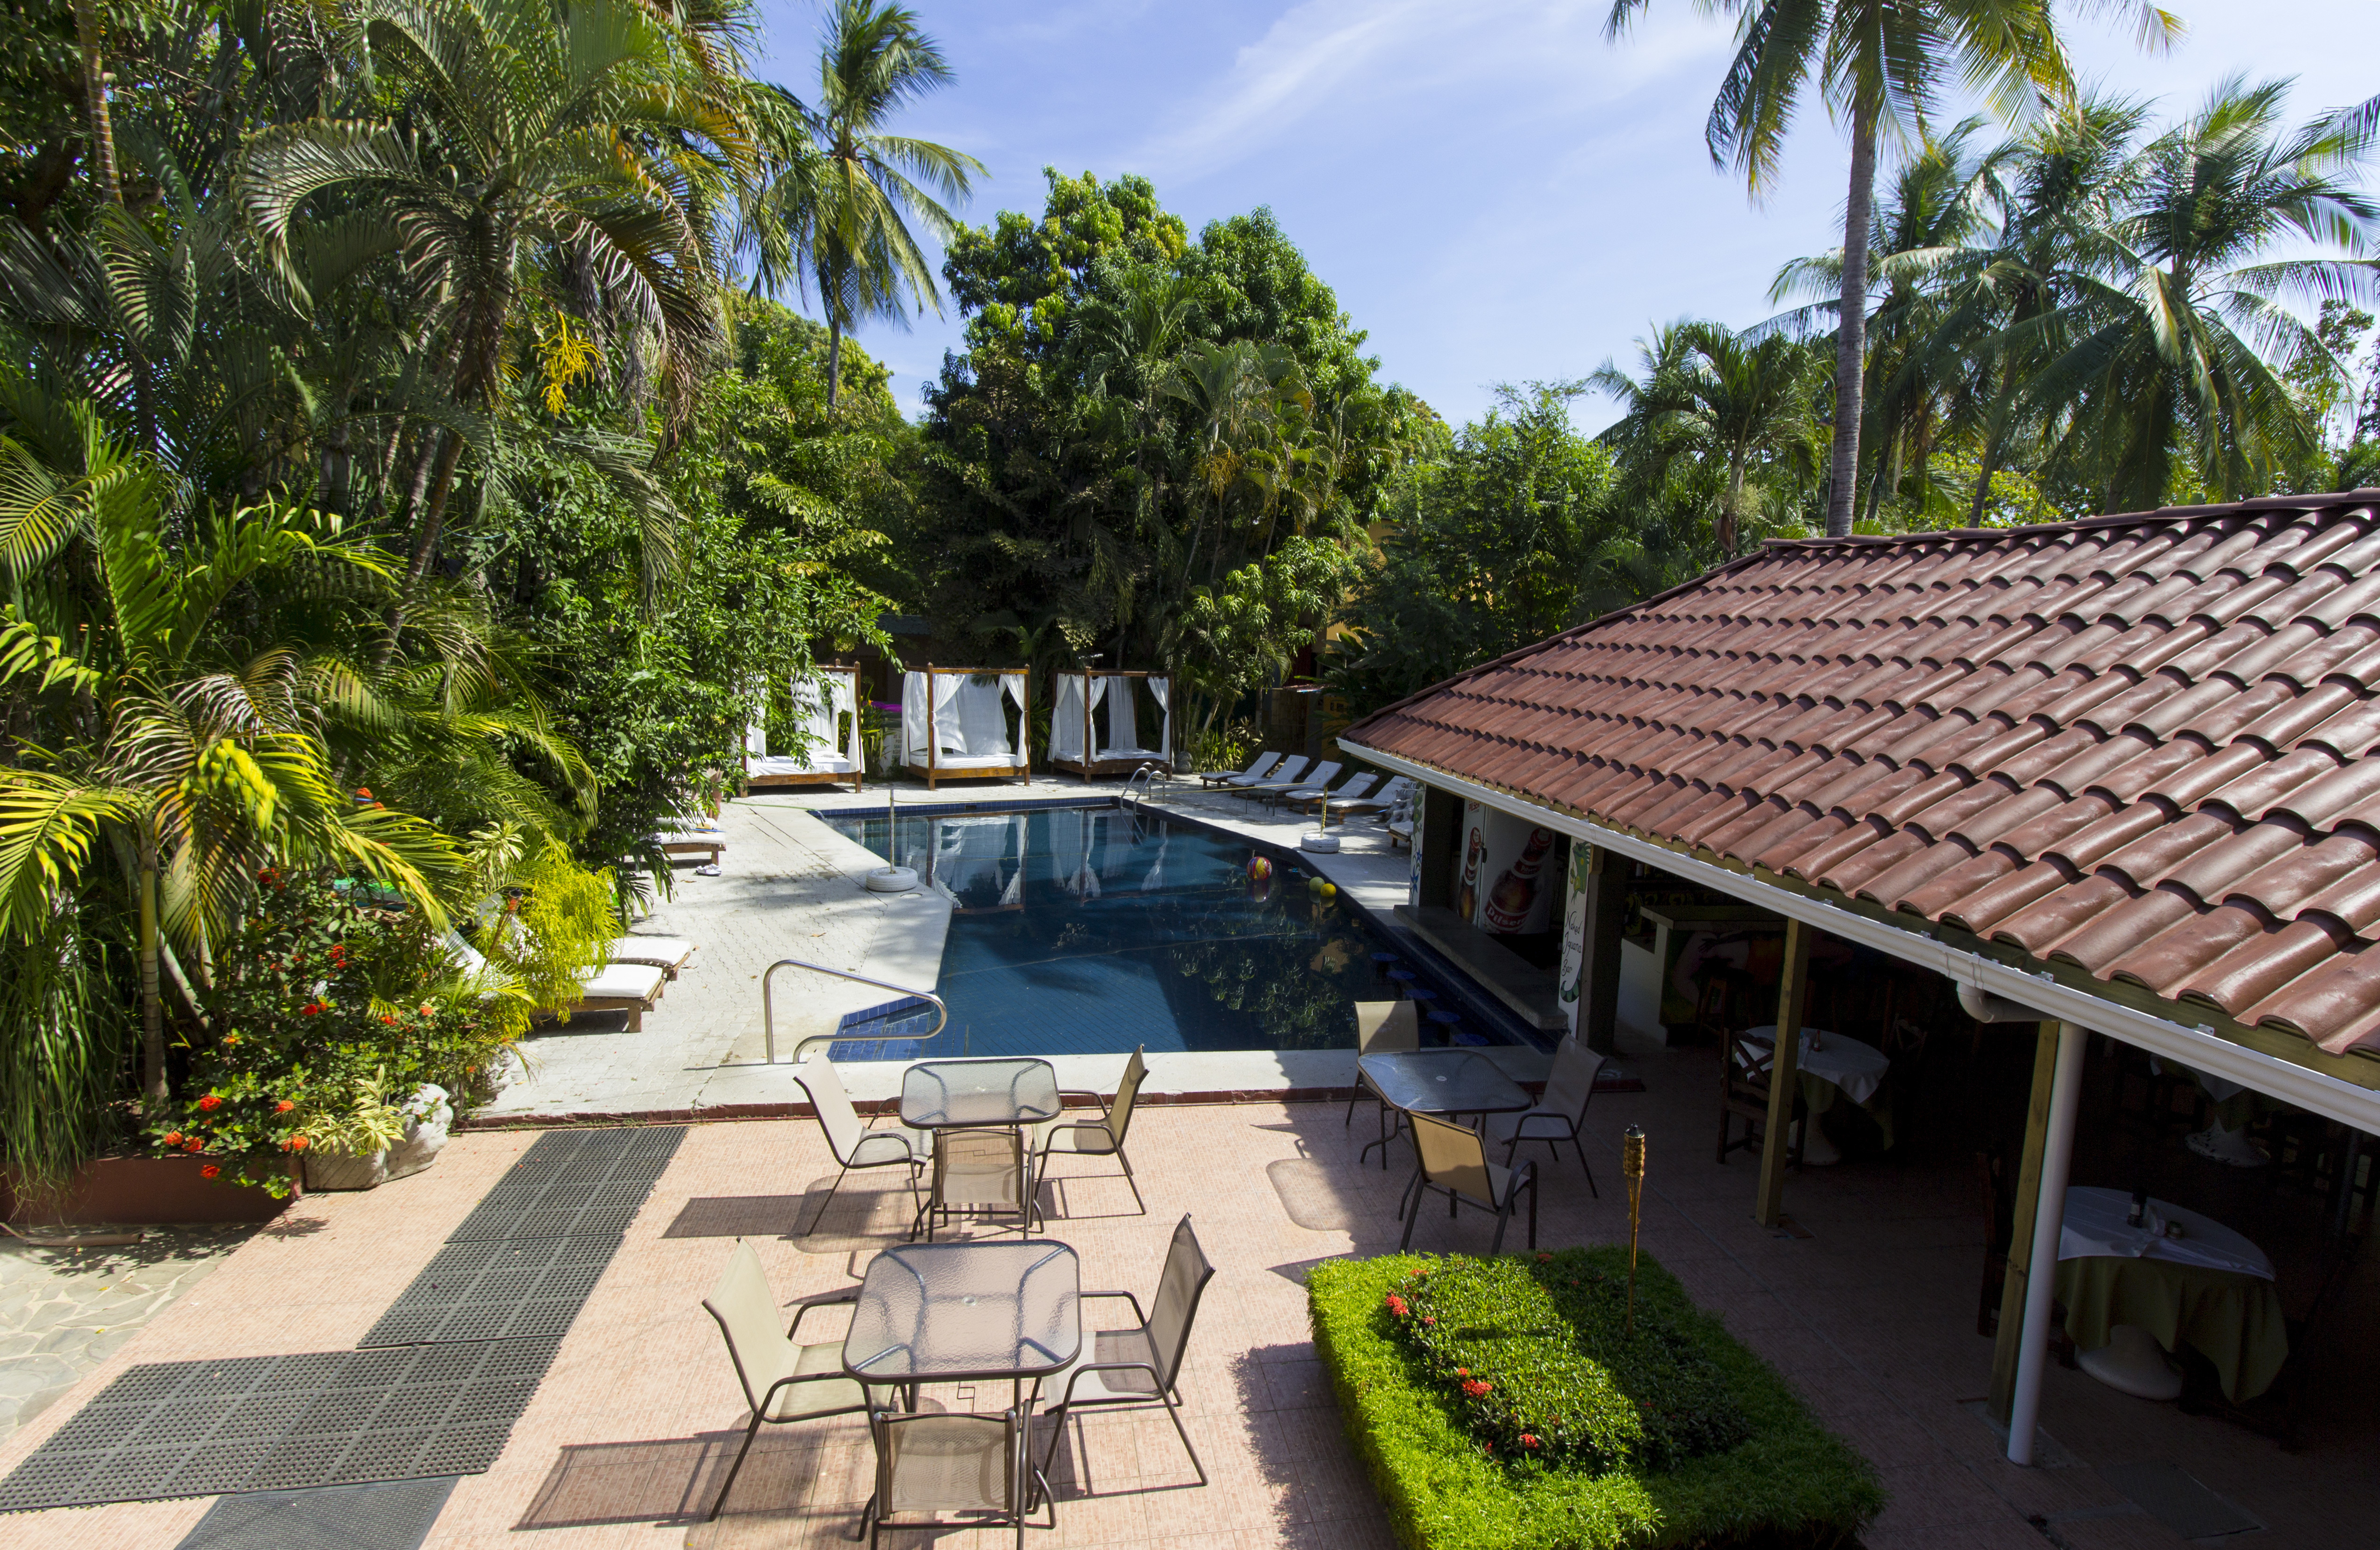 Surfholidays Copacabana Hotel Suites Central Pacific Dominical Hermosa Jaco